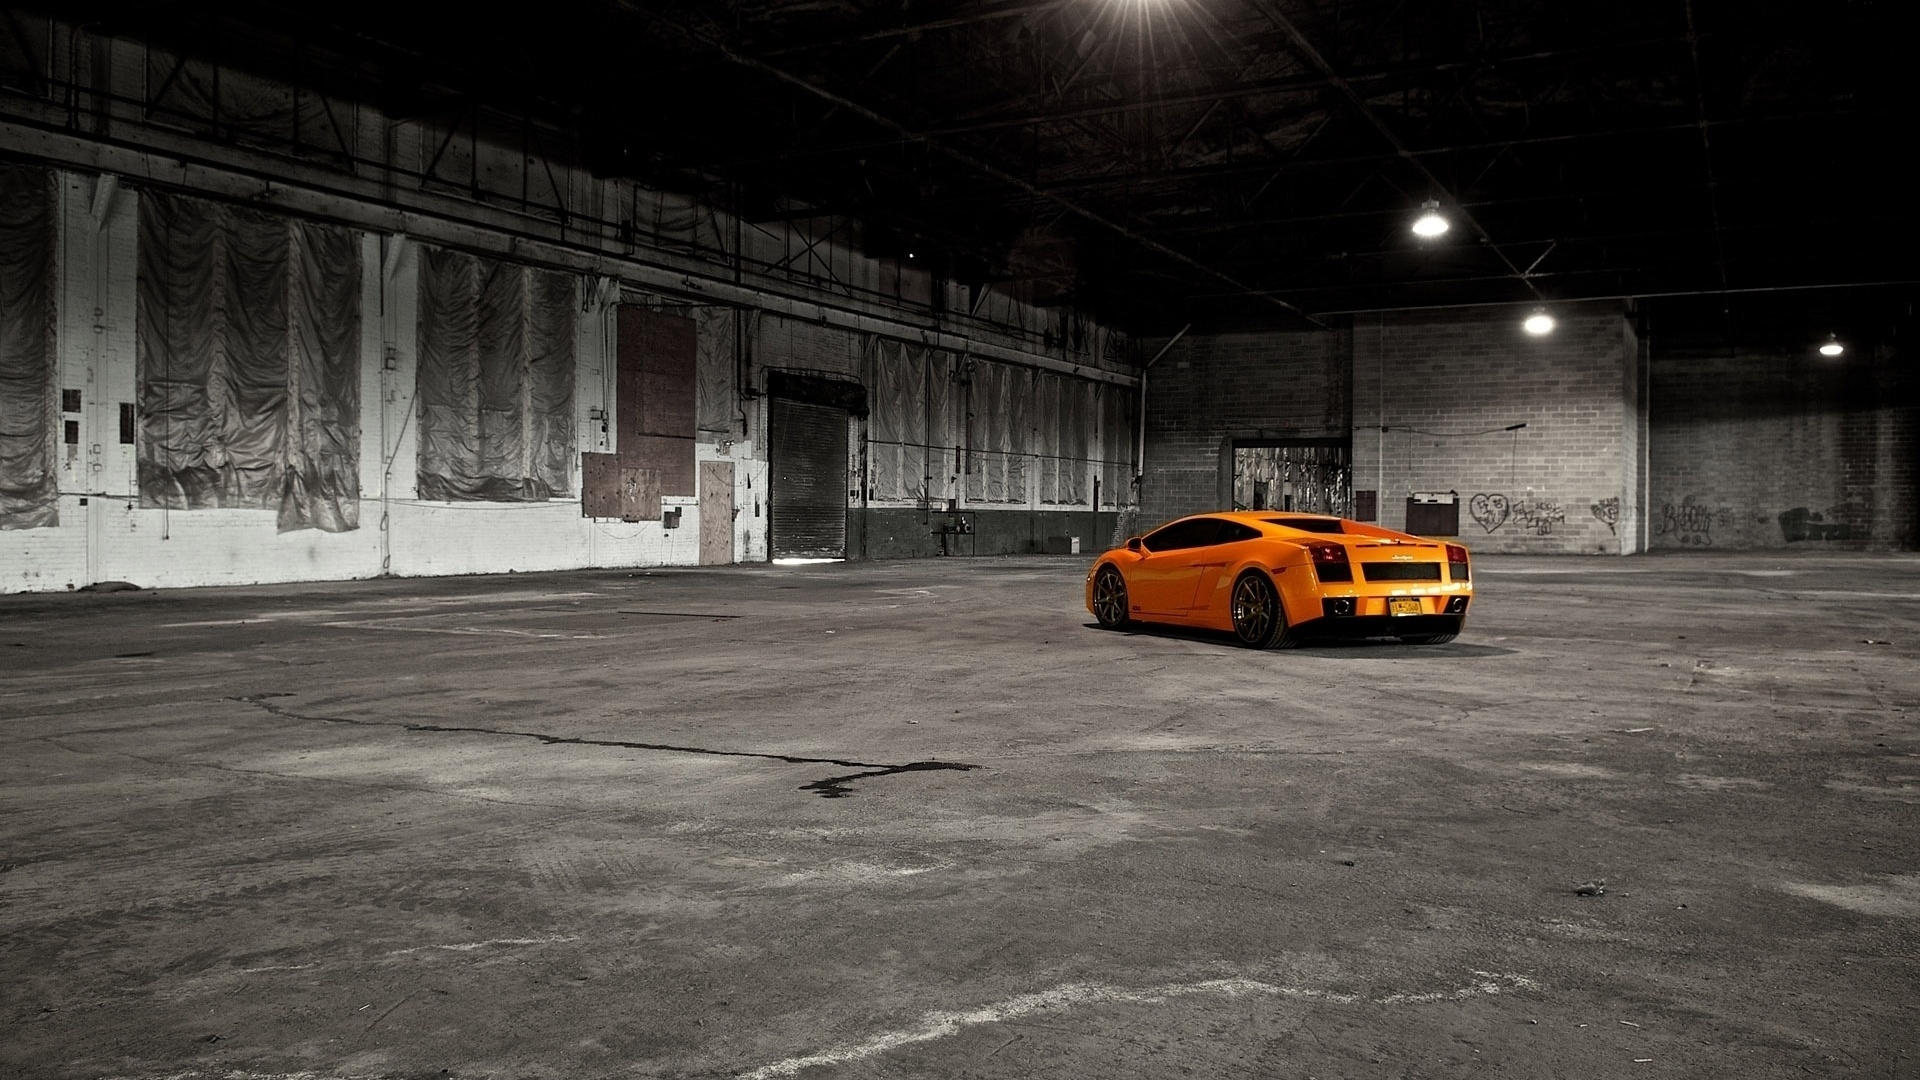 Awesome Warehouse Wallpaper 39155 1920x1080 Px